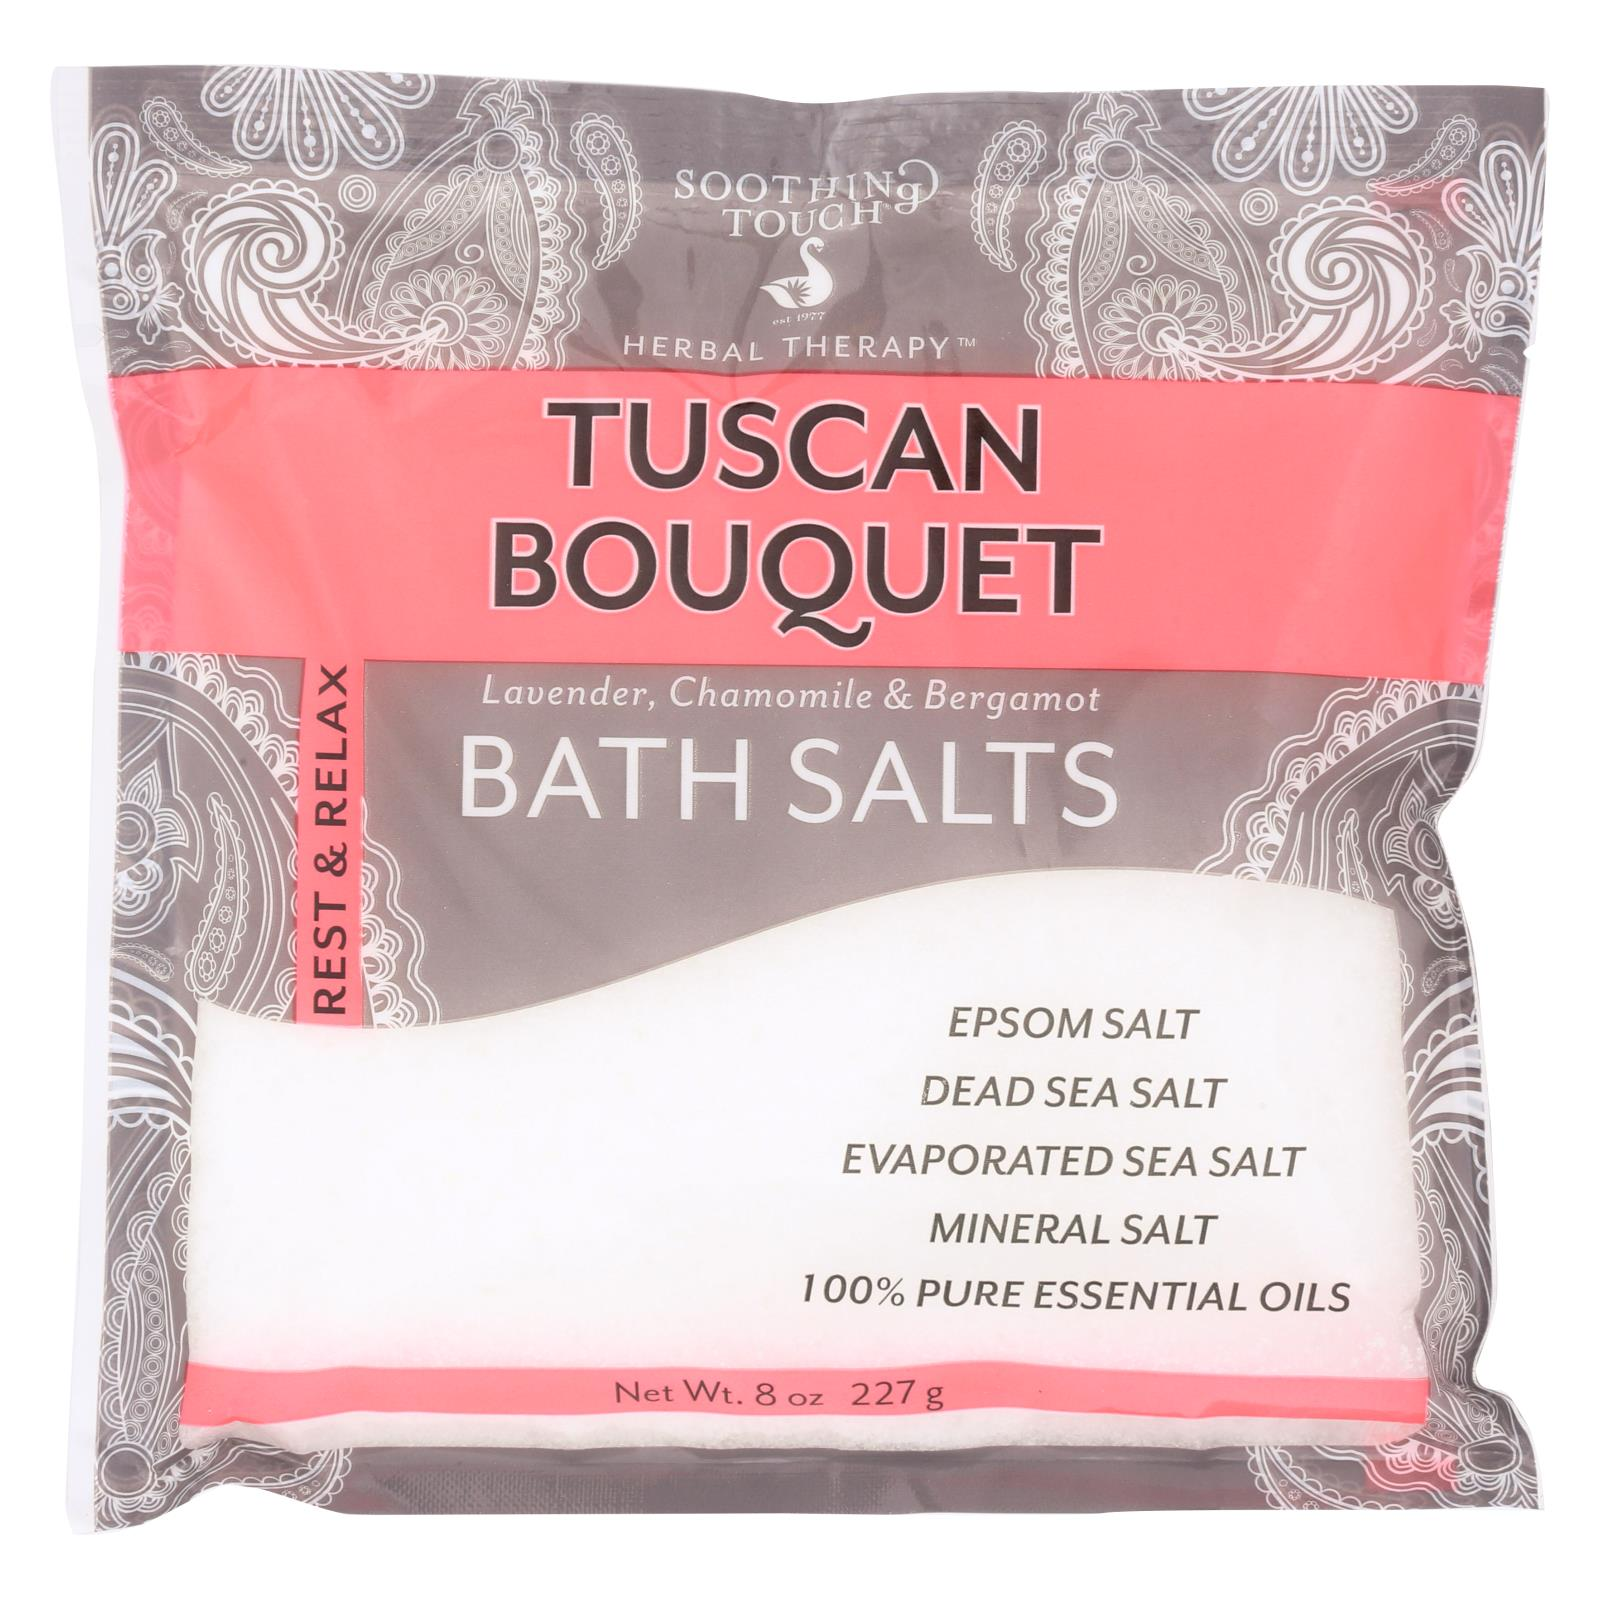 Soothing Touch Bath Salts - Tuscan Bouquet - Case of 6 - 8 oz